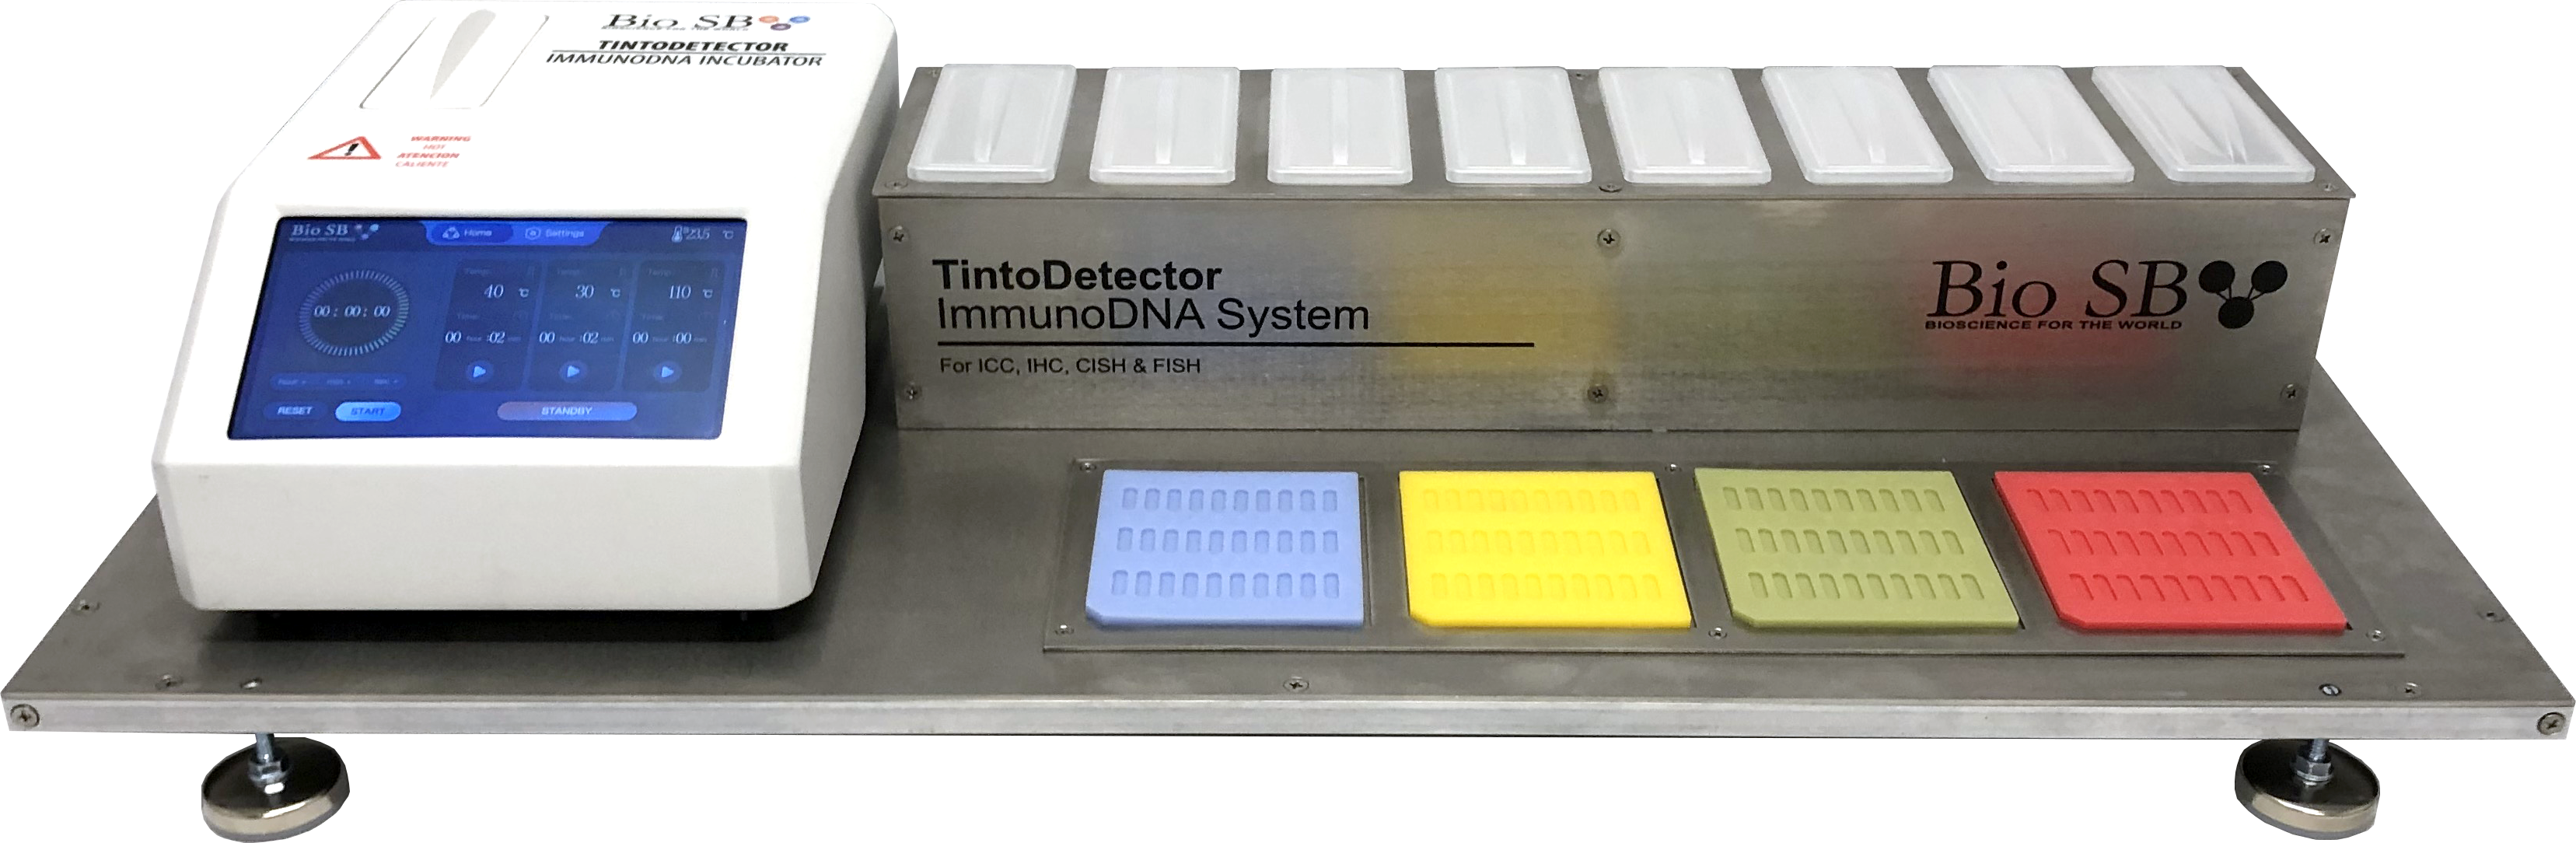 TintoDetector ImmunoDNA system compact molecular pathology manual staining Immunohistochemistry (IHC), Immunocytochemistry (ICC), Immunofluorescence (IF) and In-situ Hybridization (ISH)